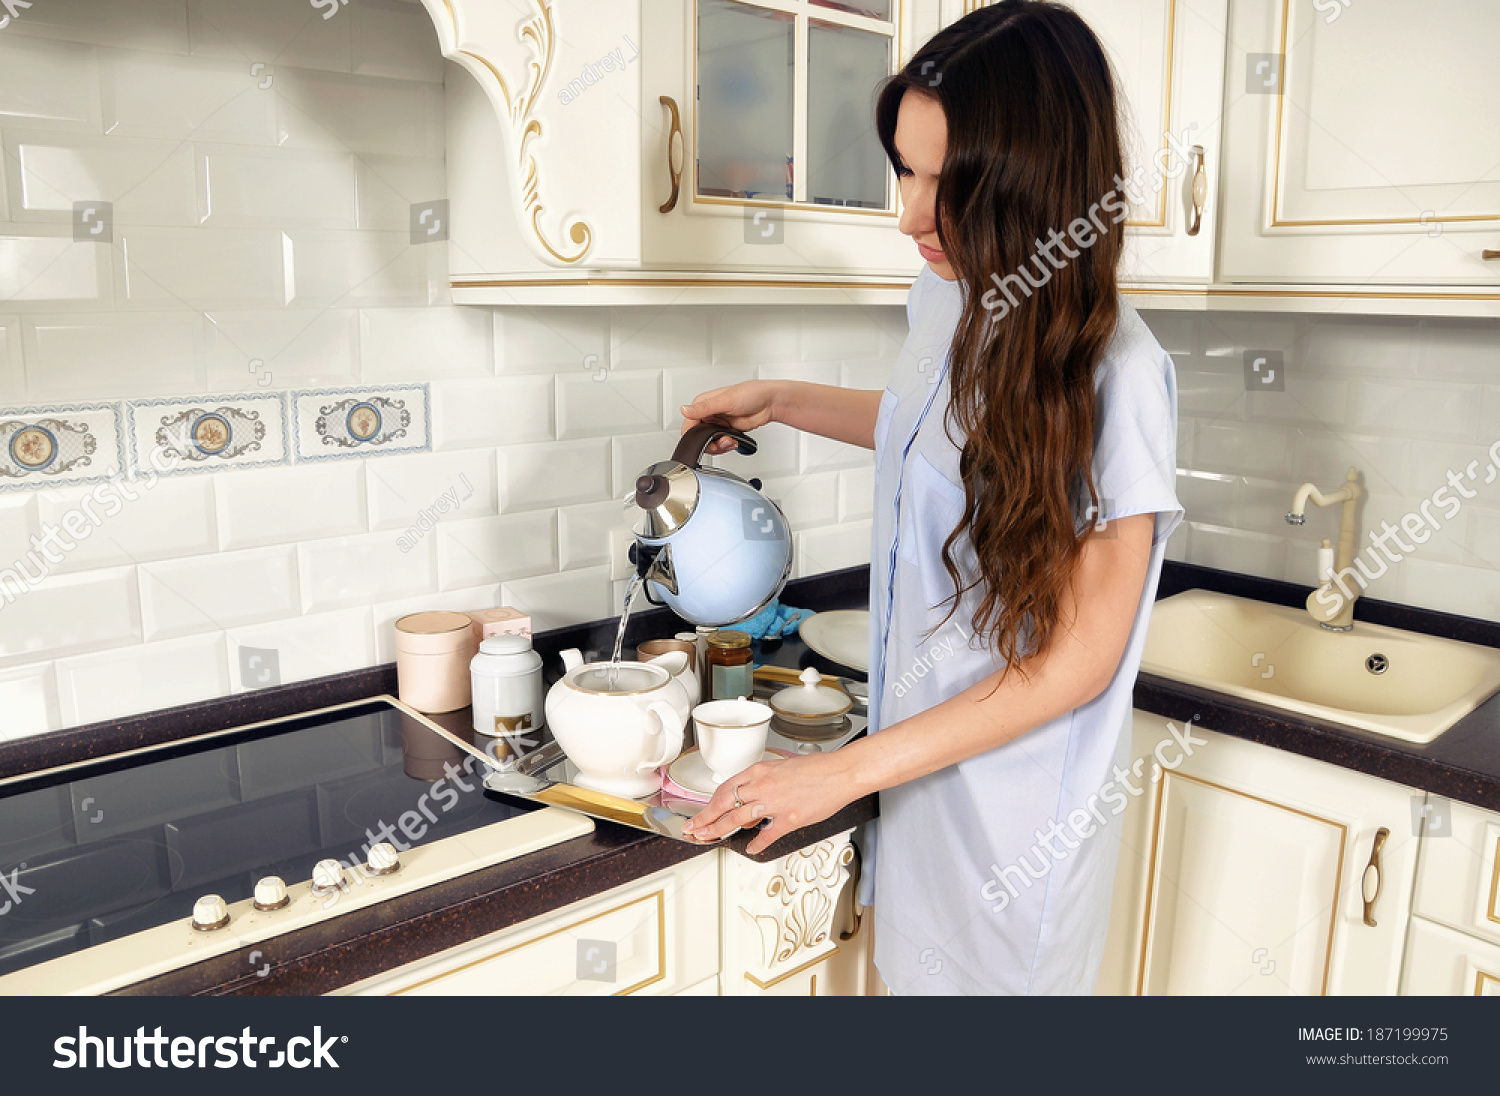 Young Woman Kitchen Making Tea Stock Photo (Download Now) 187199975 ...